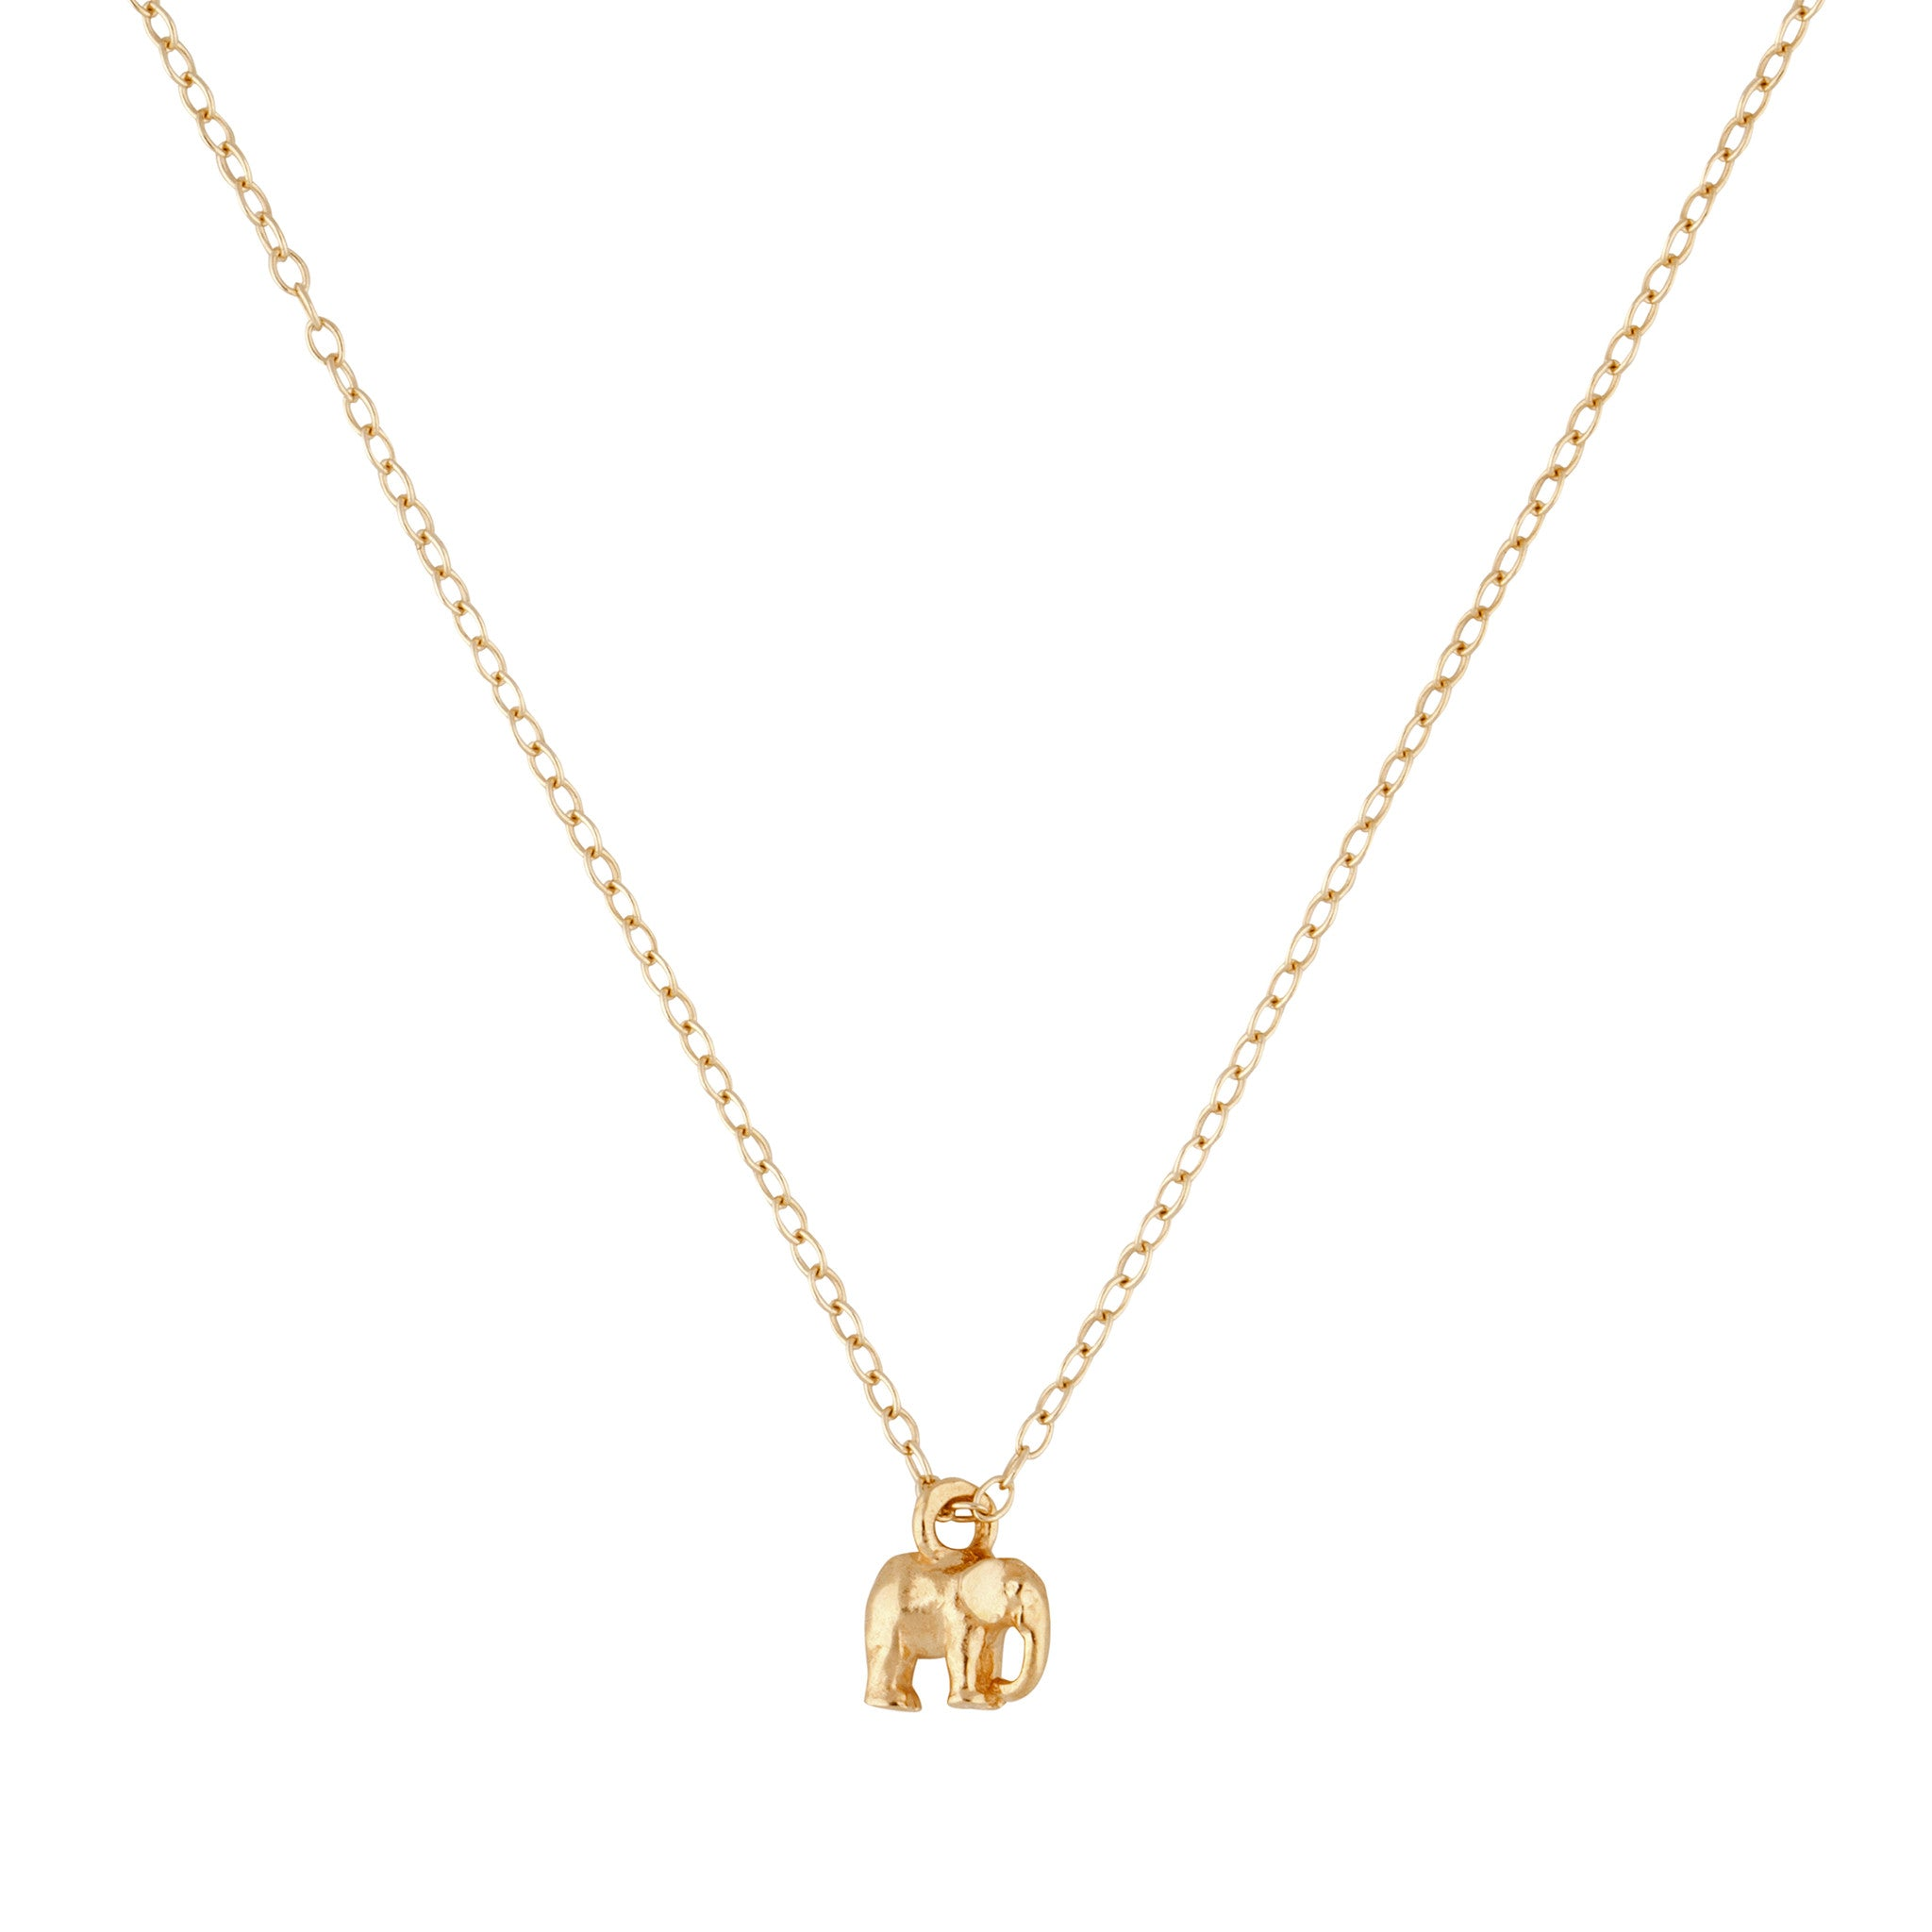 9kt Gold Elephant Necklace - MoMuse Jewellery